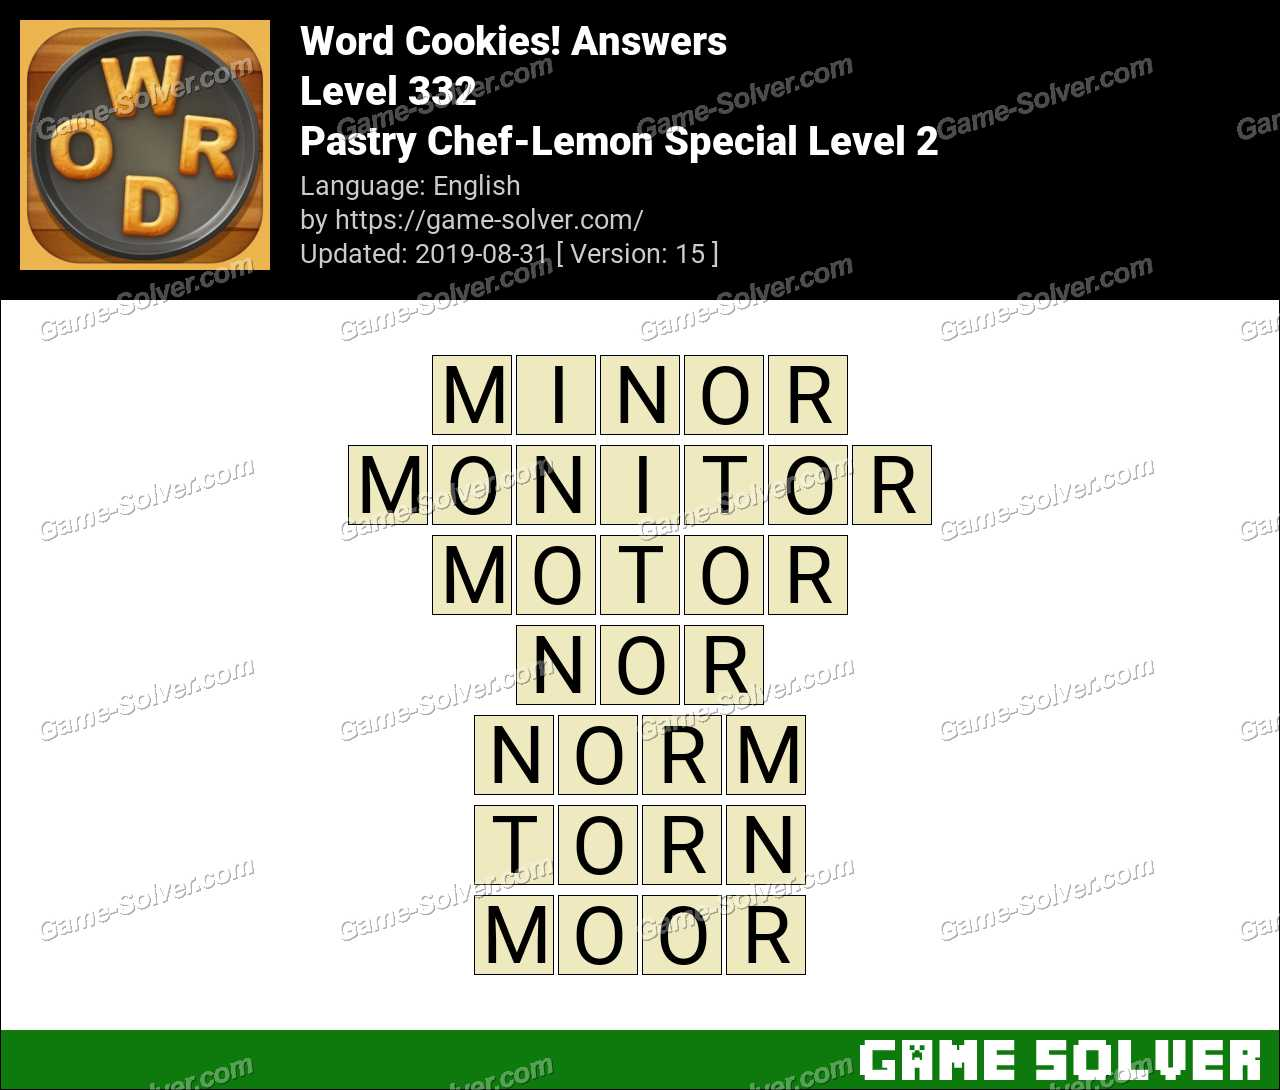 Word Cookies Pastry Chef-Lemon Special Level 2 Answers